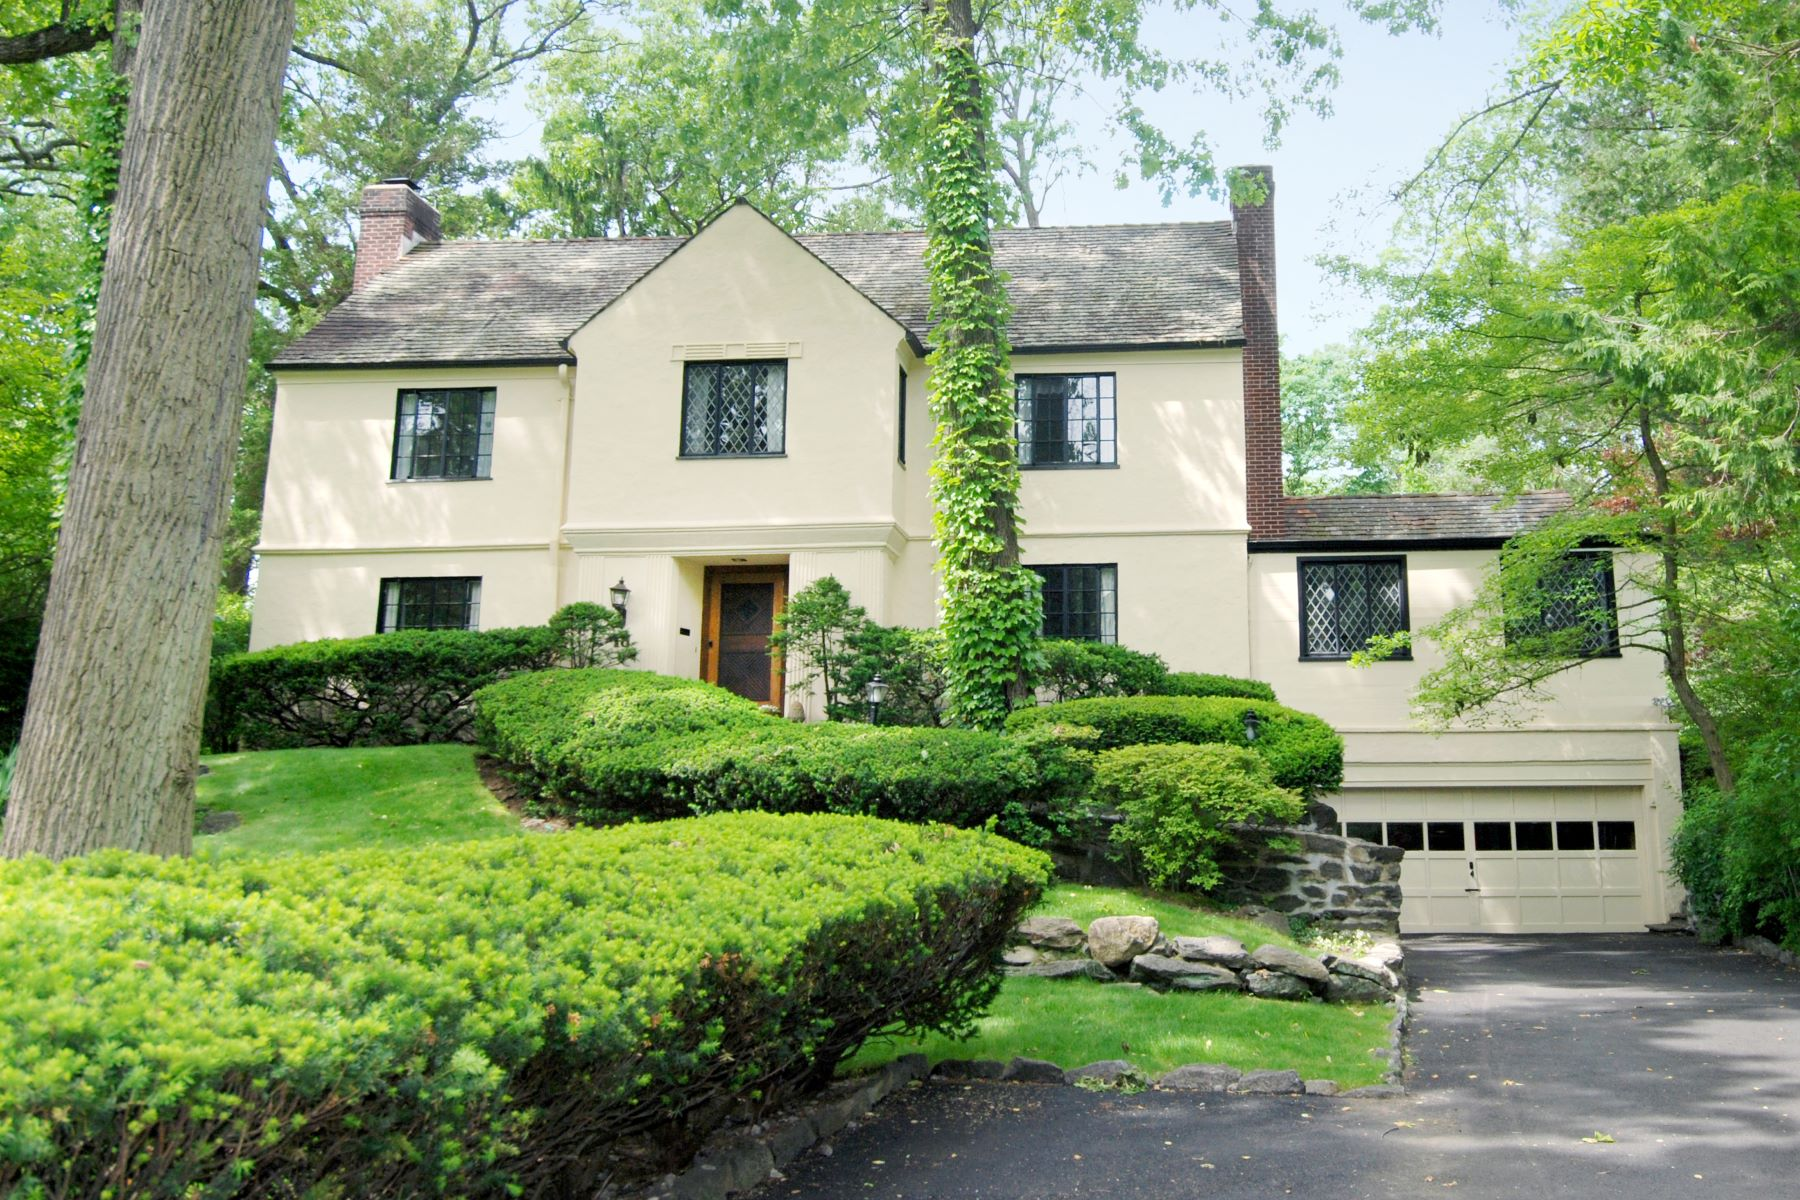 Single Family Homes for Sale at 18 Normandy Lane New Rochelle, New York 10804 United States